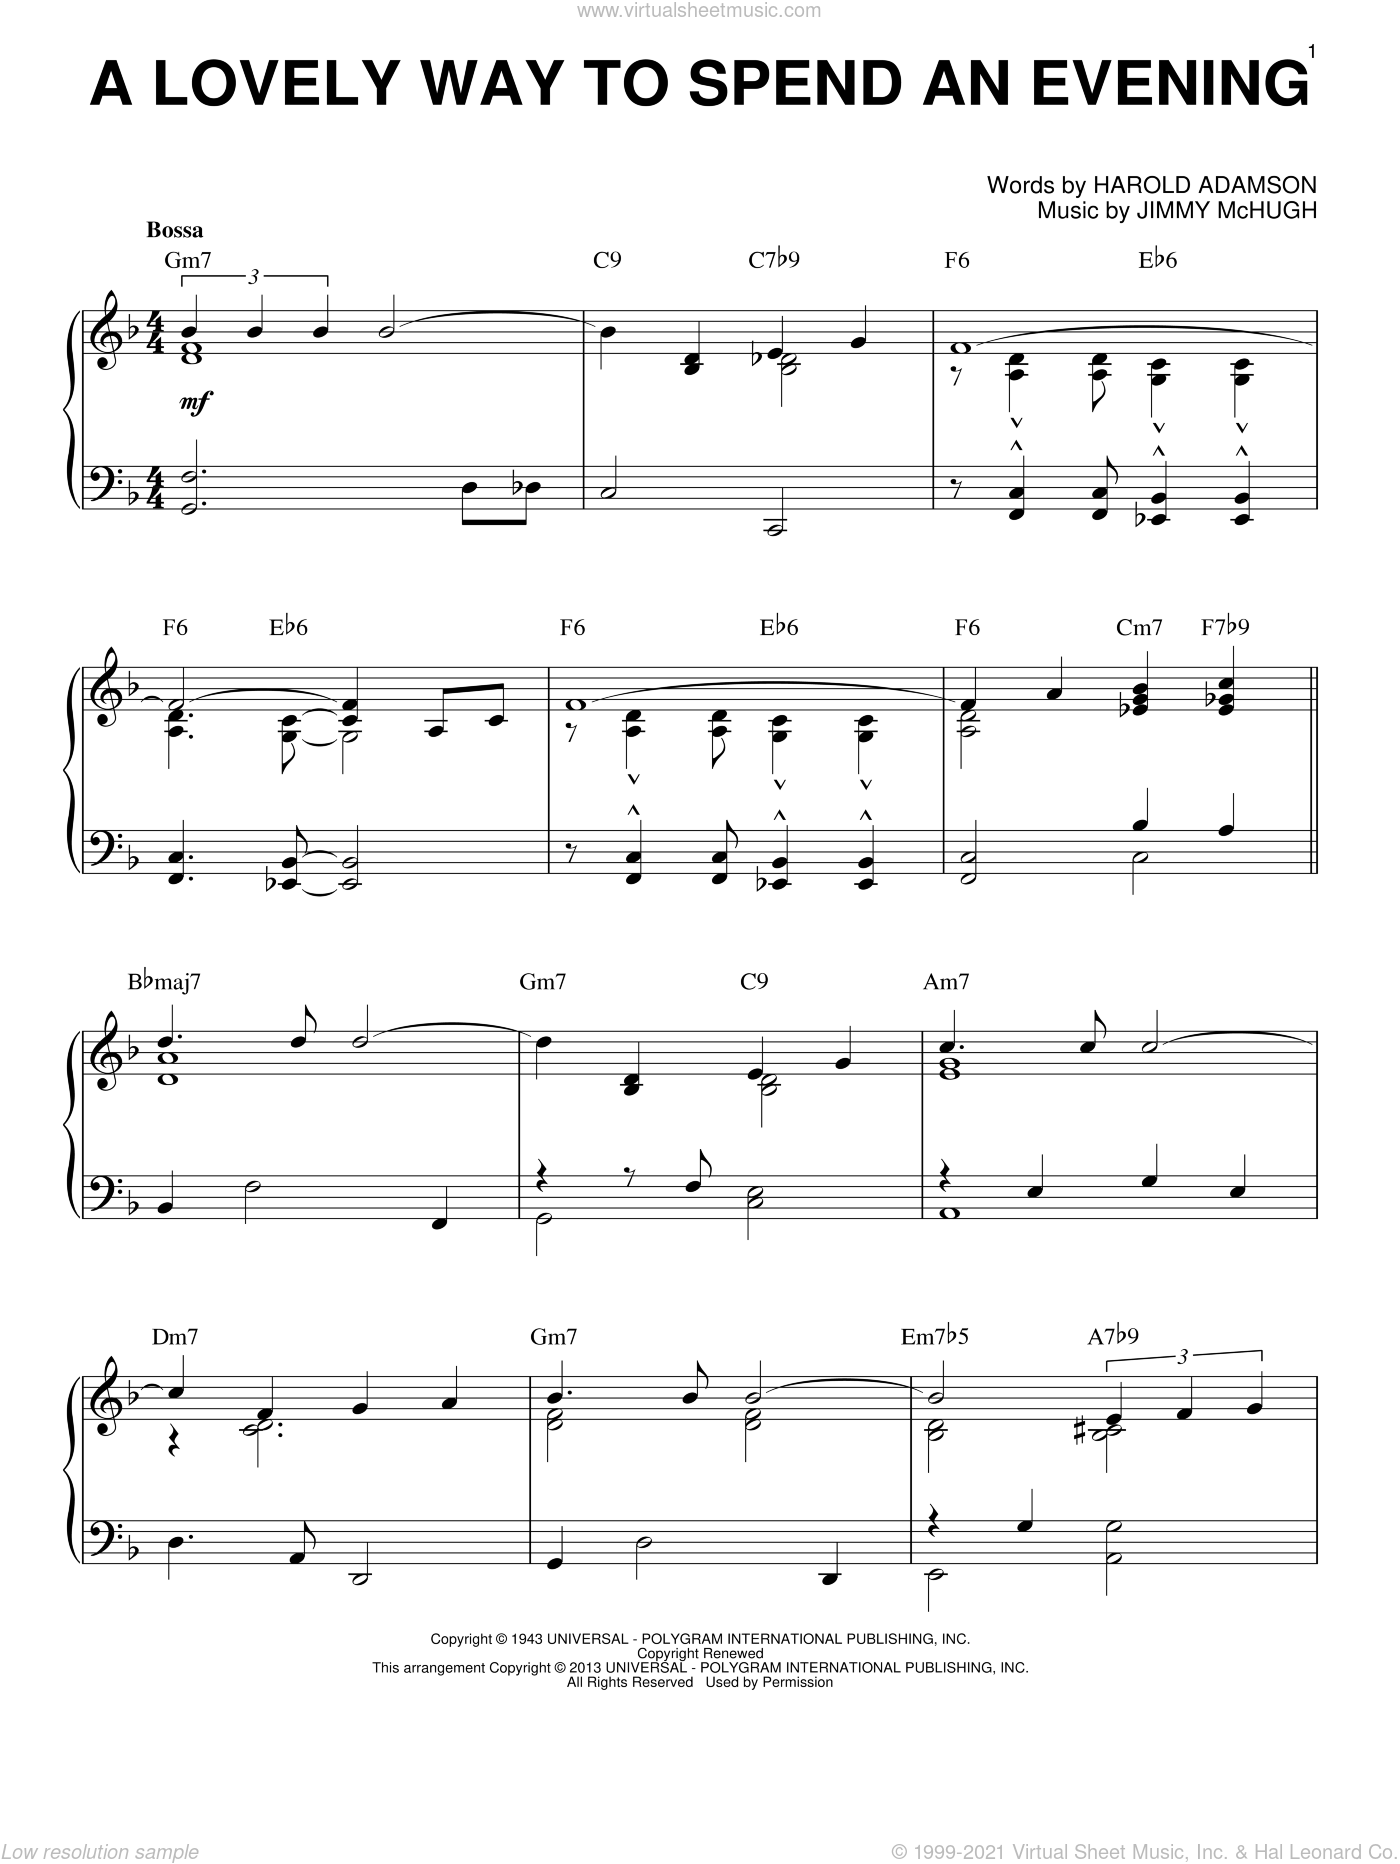 A Lovely Way To Spend An Evening (arr. Brent Edstrom) sheet music for piano solo by Frank Sinatra, Harold Adamson and Jimmy McHugh, intermediate skill level